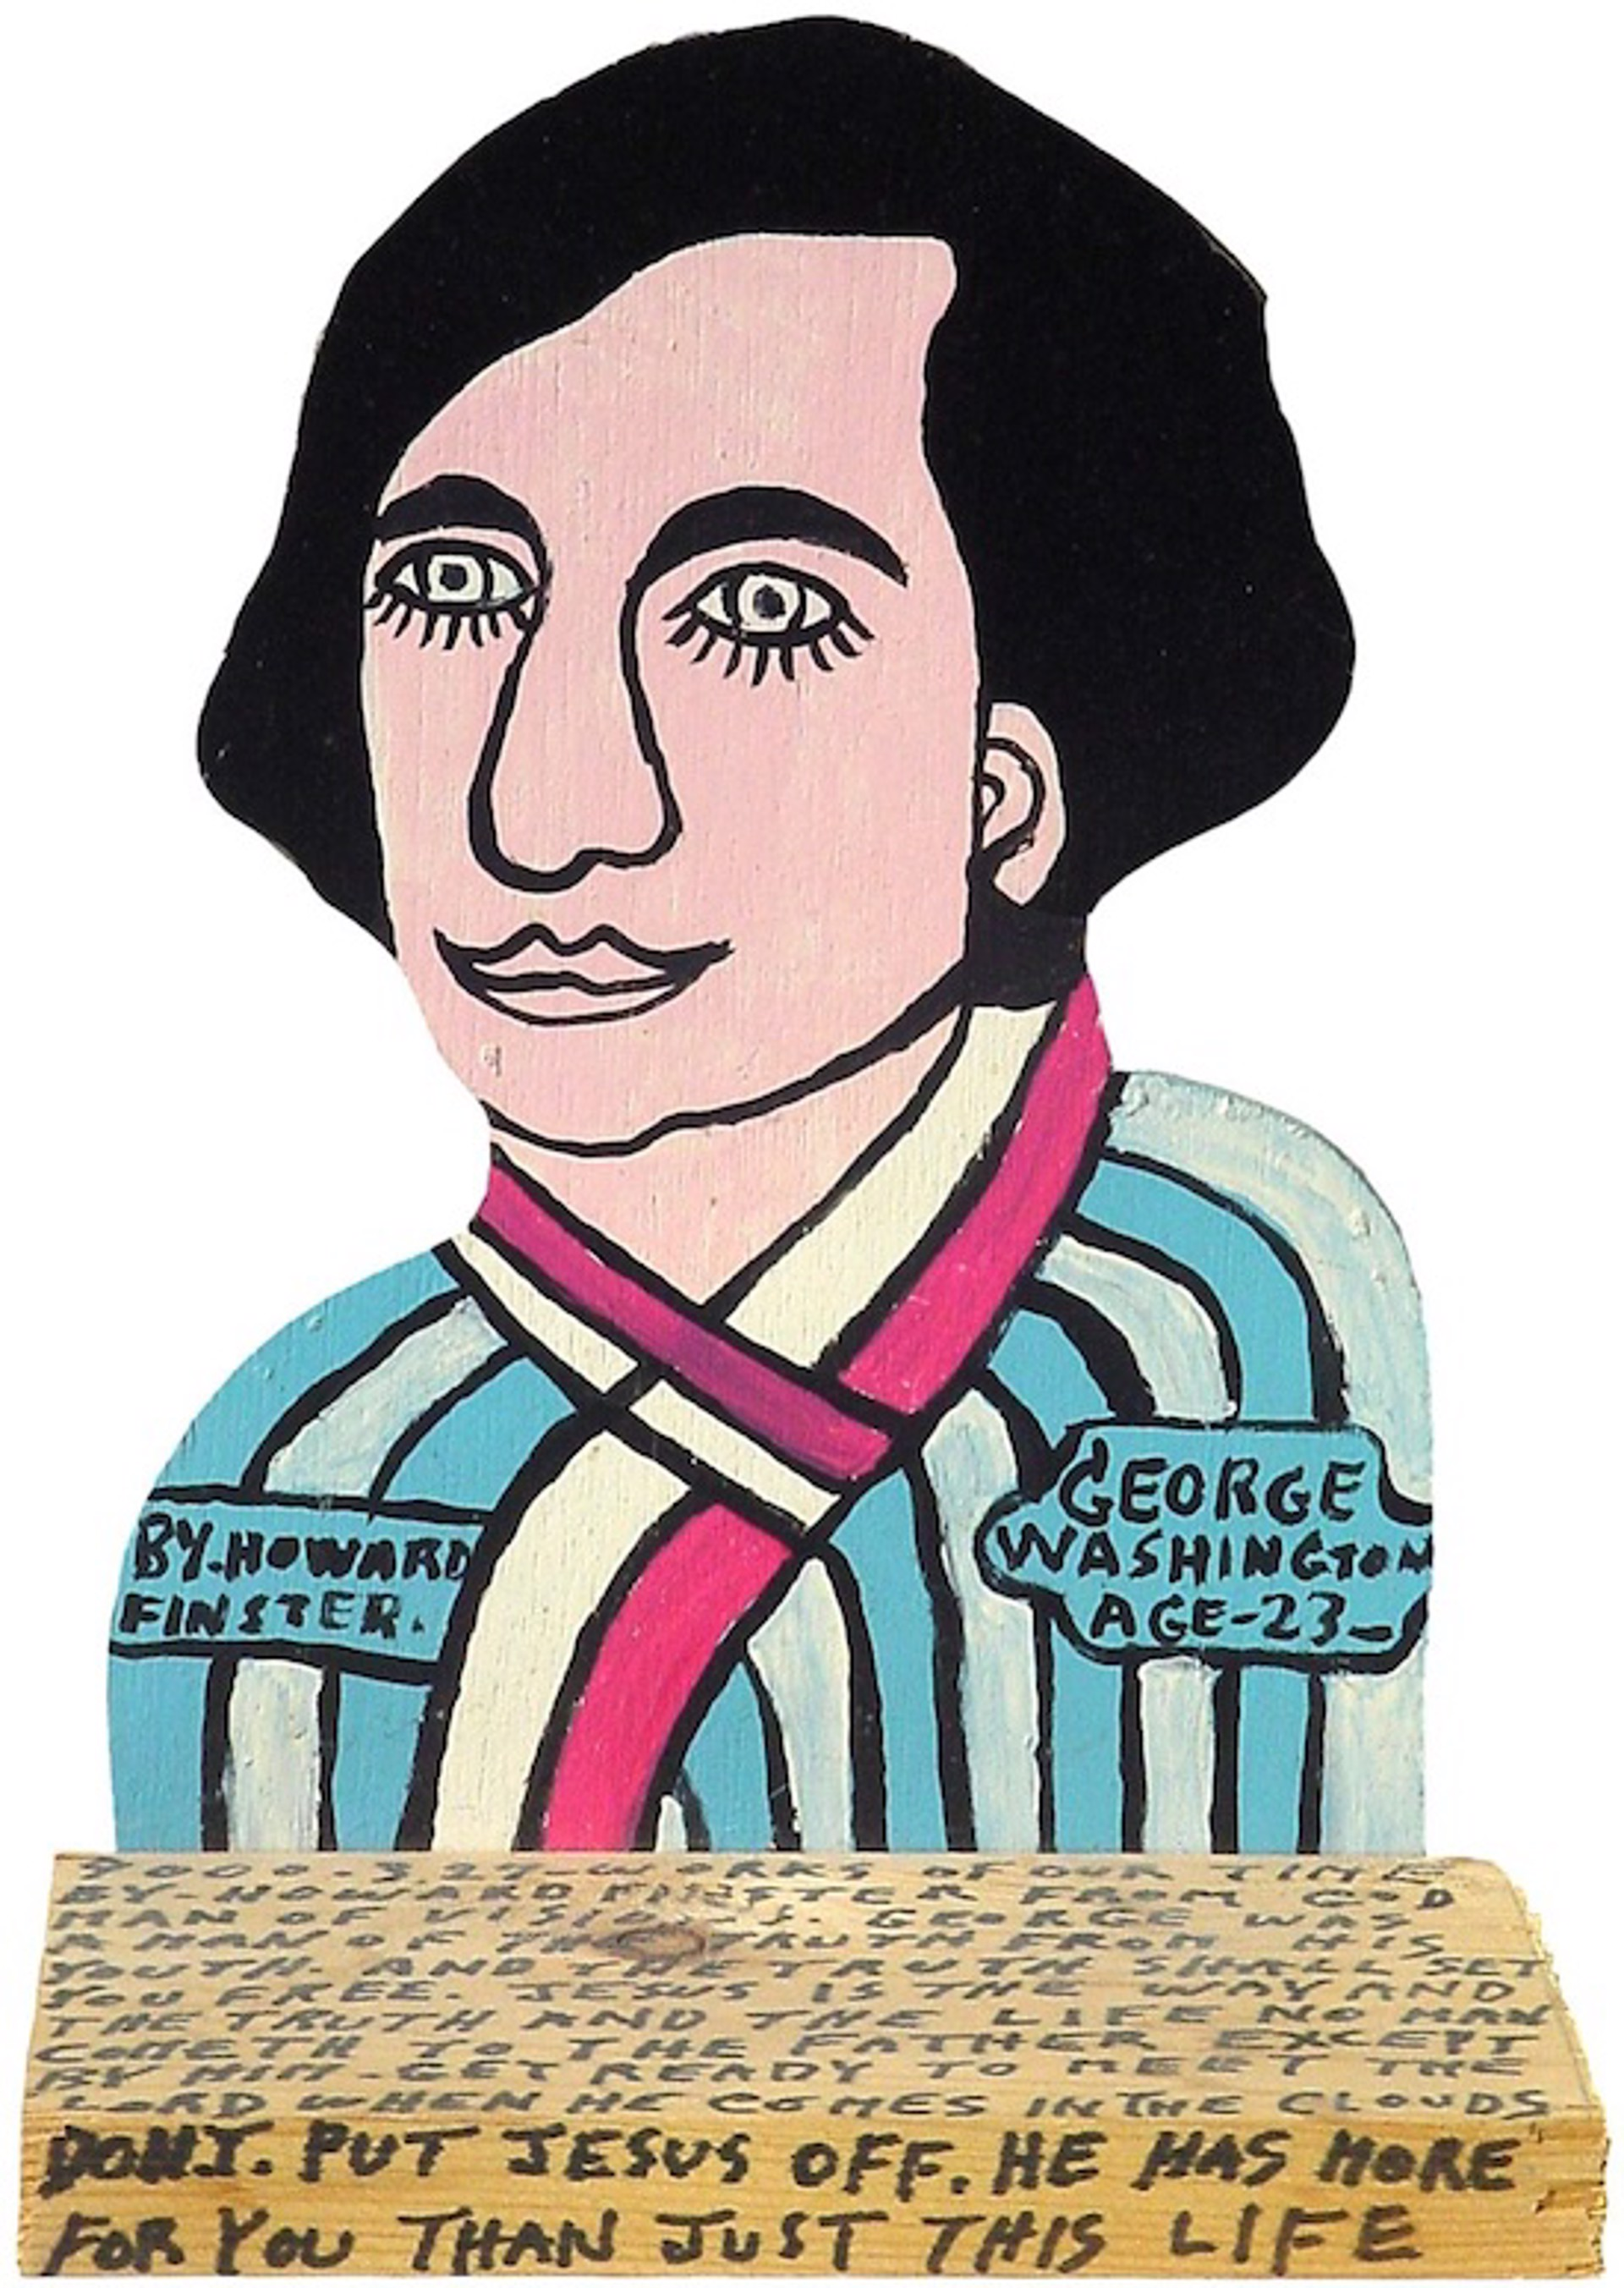 George Washington by Howard Finster